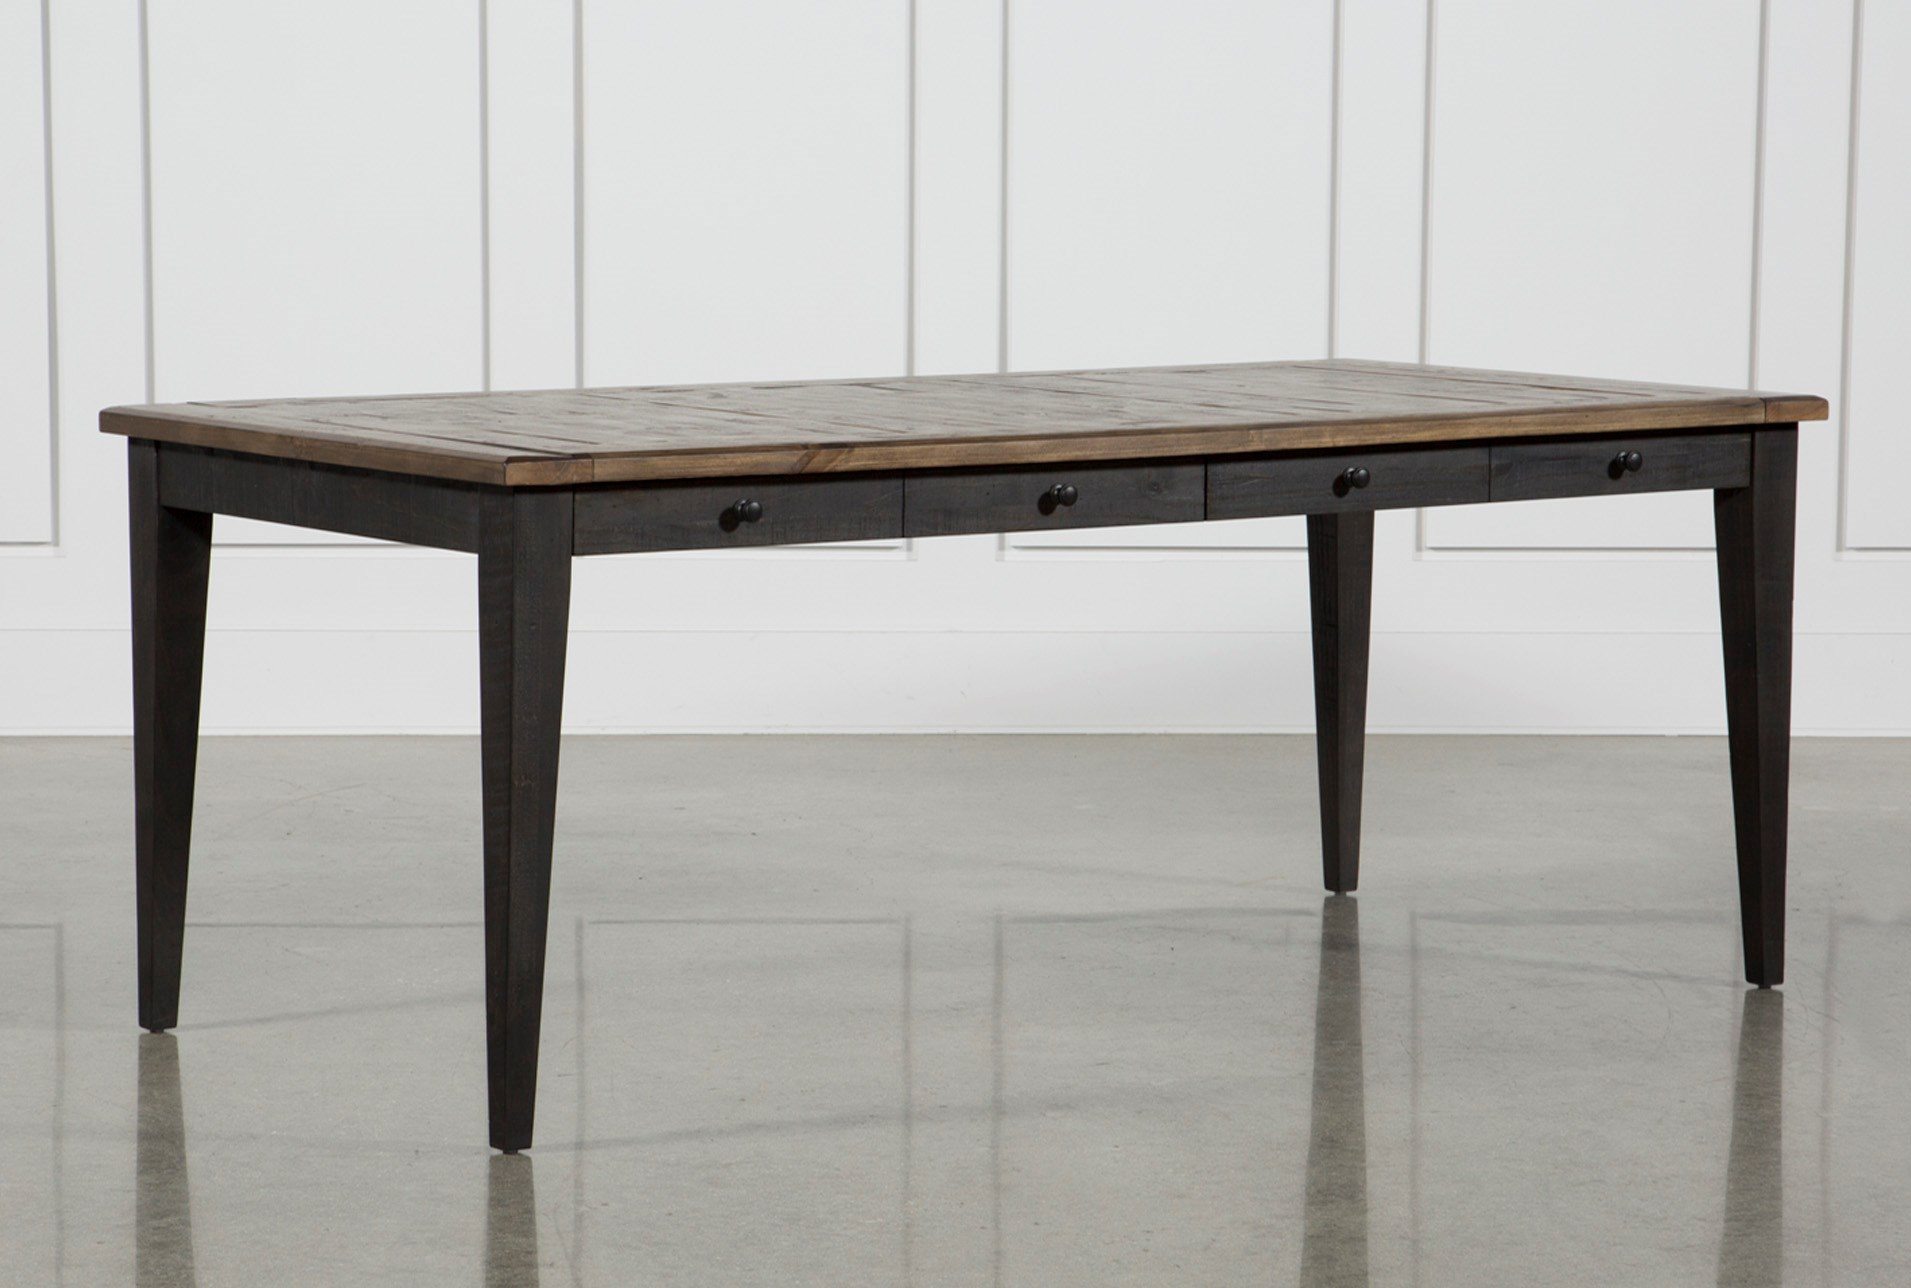 Foundry Dining Table Qty 1 Has Been Successfully Added To Your Cart